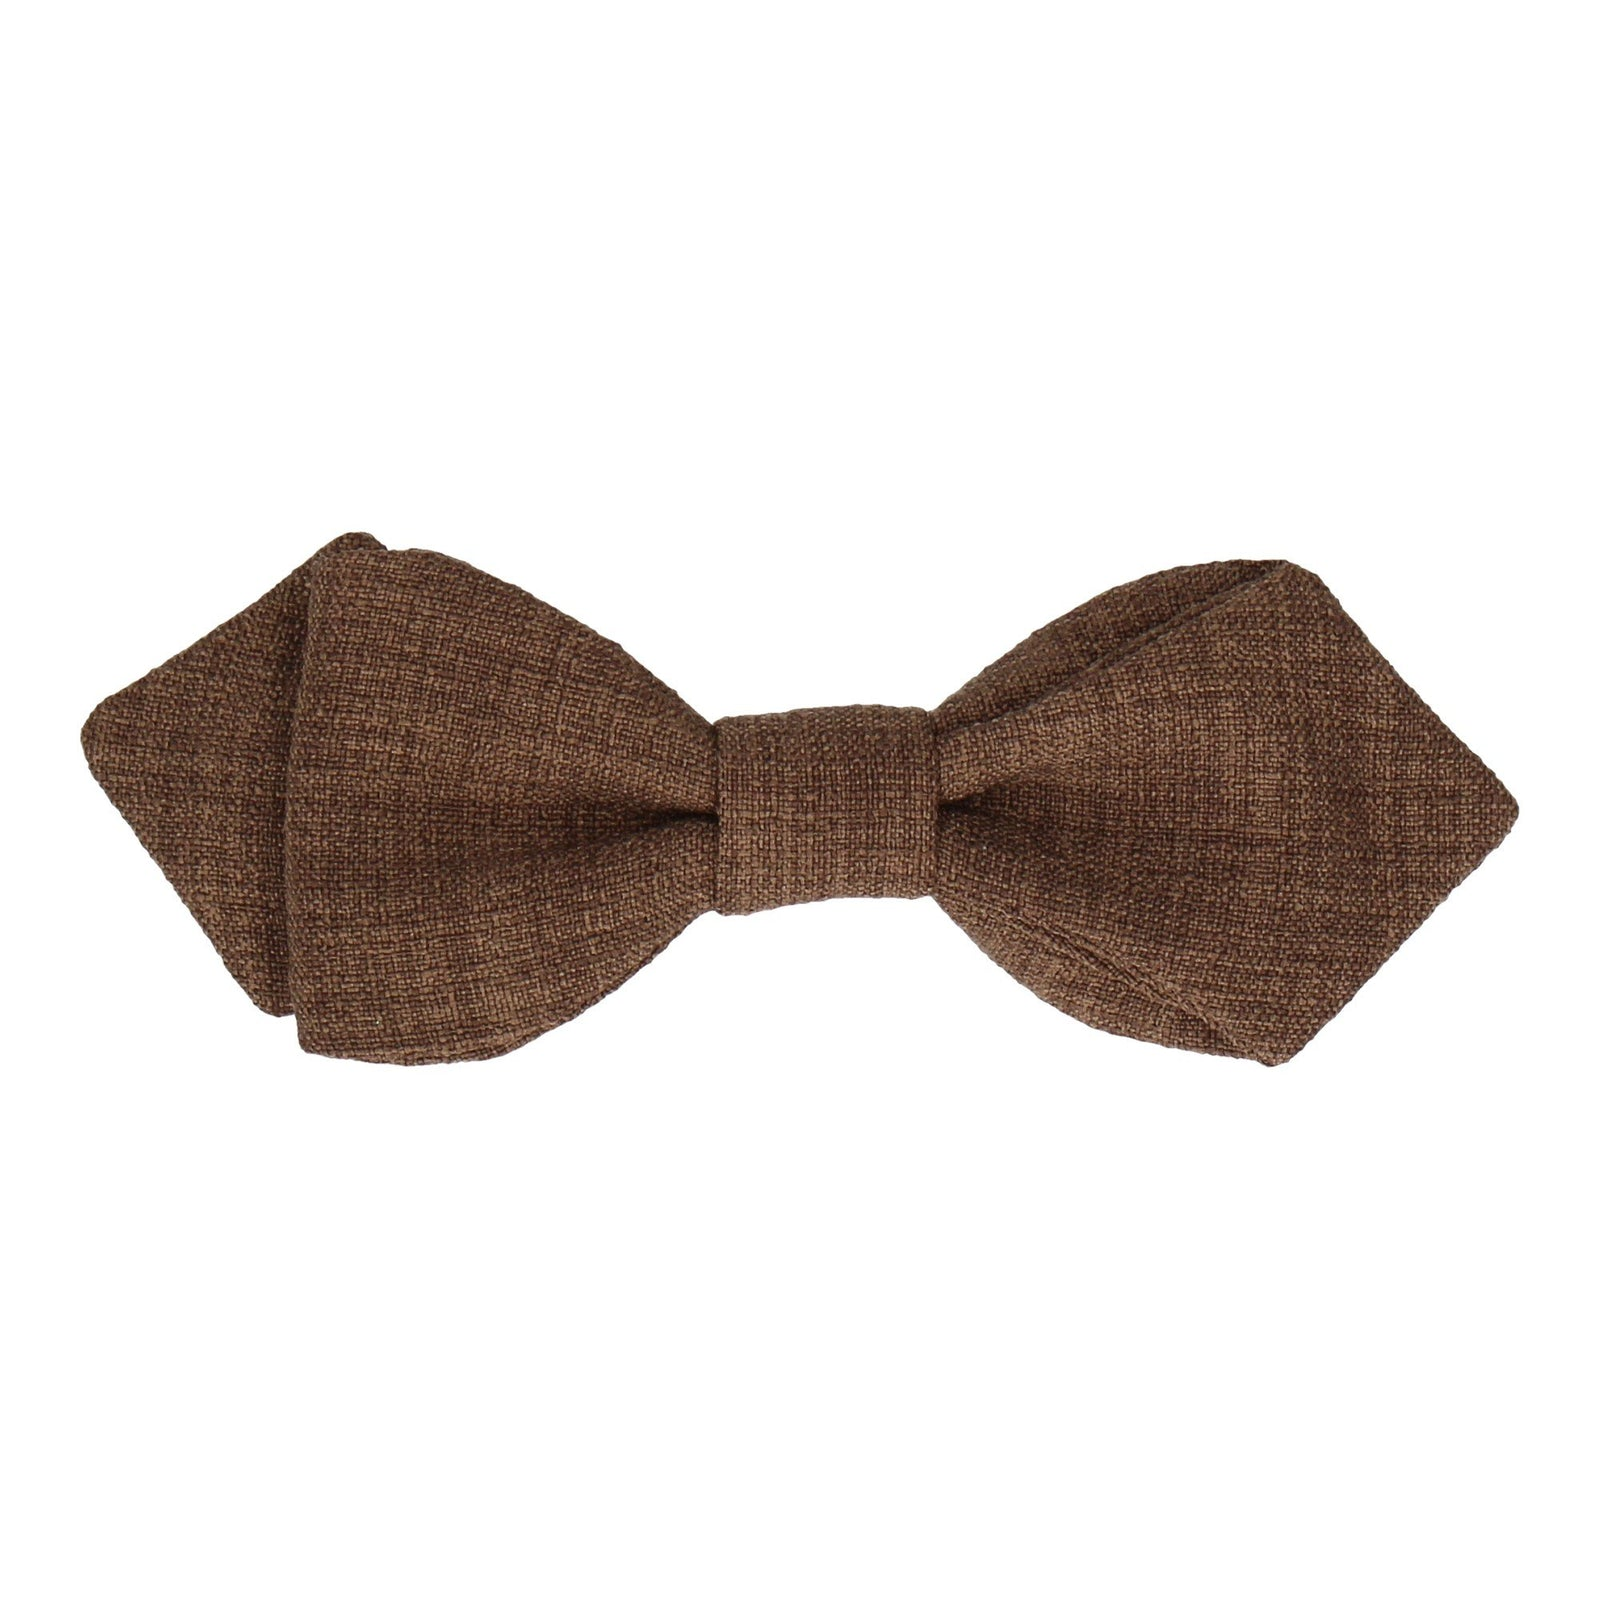 Pecan Brown Textured Cotton Linen Bow Tie